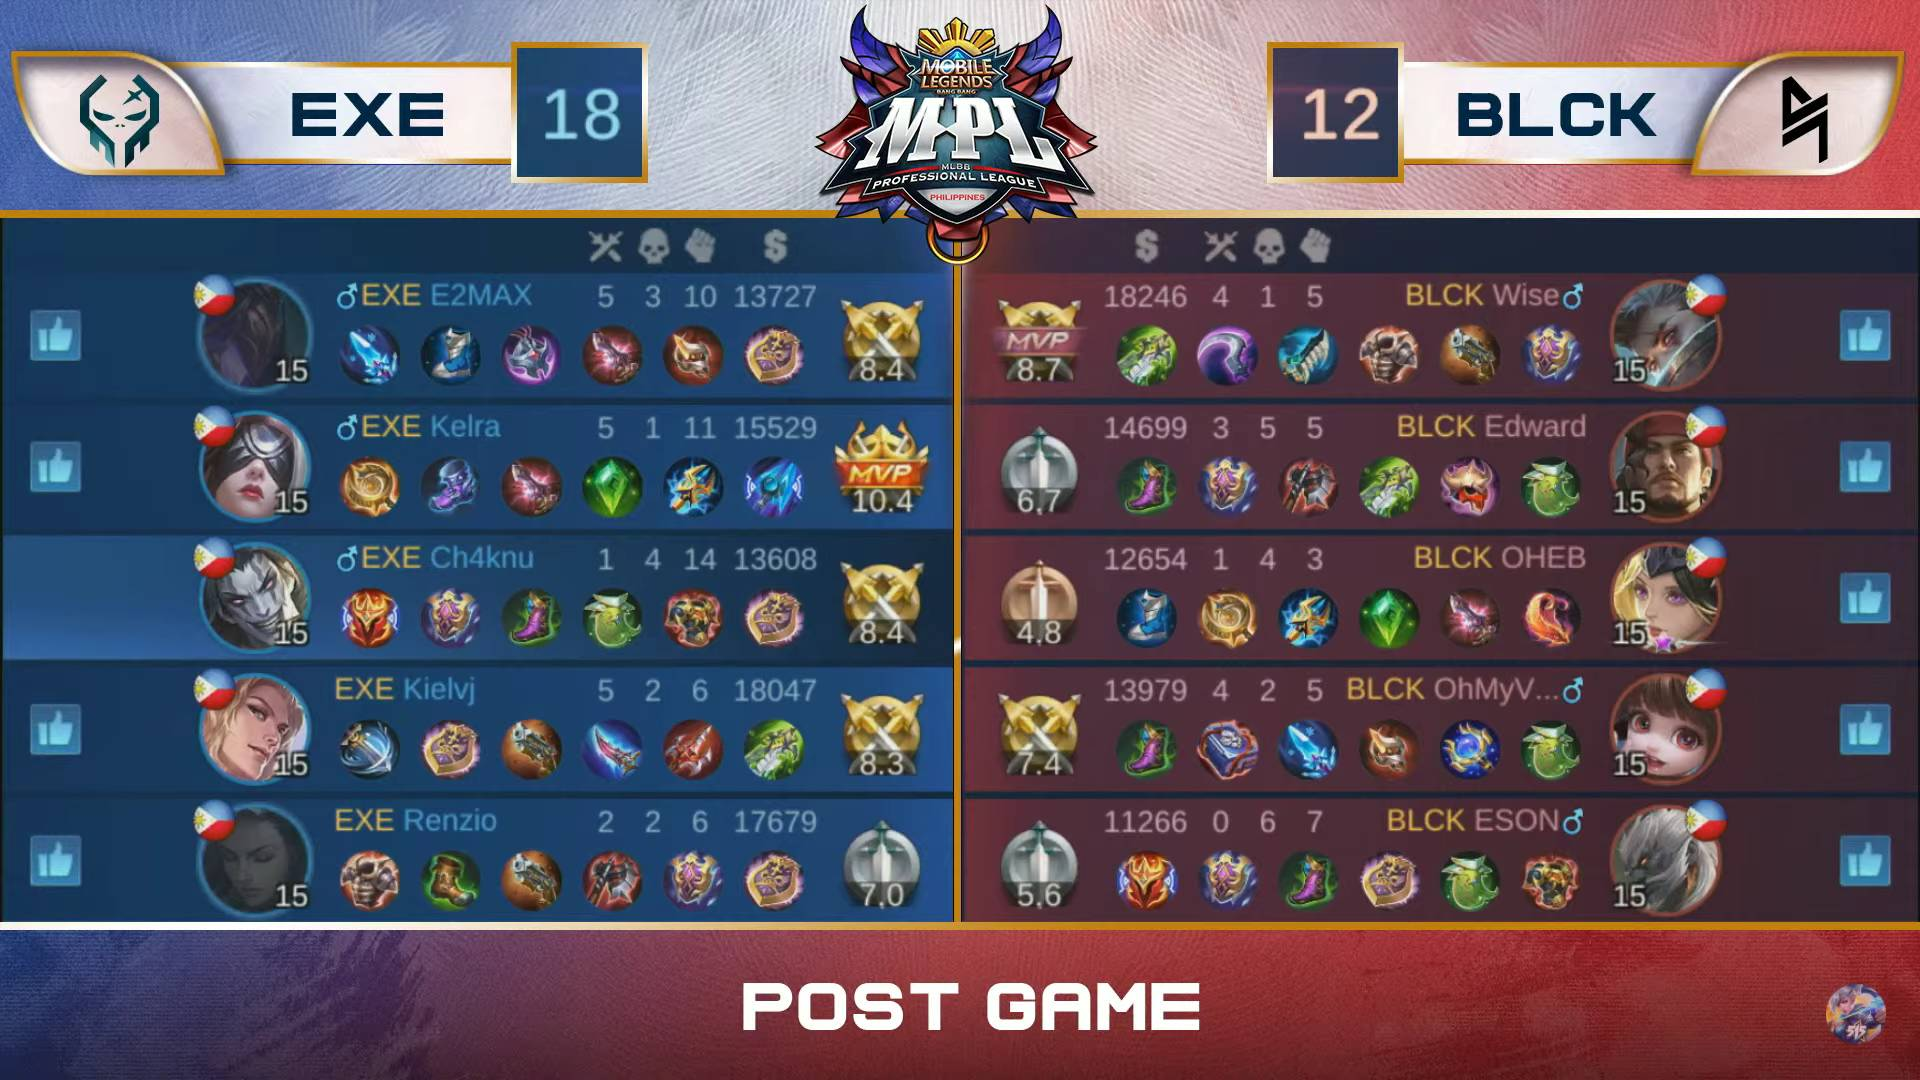 MPL-PH-Season-7-Blacklist-def-Execration-Game-2 Wise wipes out Execration in decider as Blacklist bounces back in MPL PH ESports Mobile Legends MPL-PH News  - philippine sports news